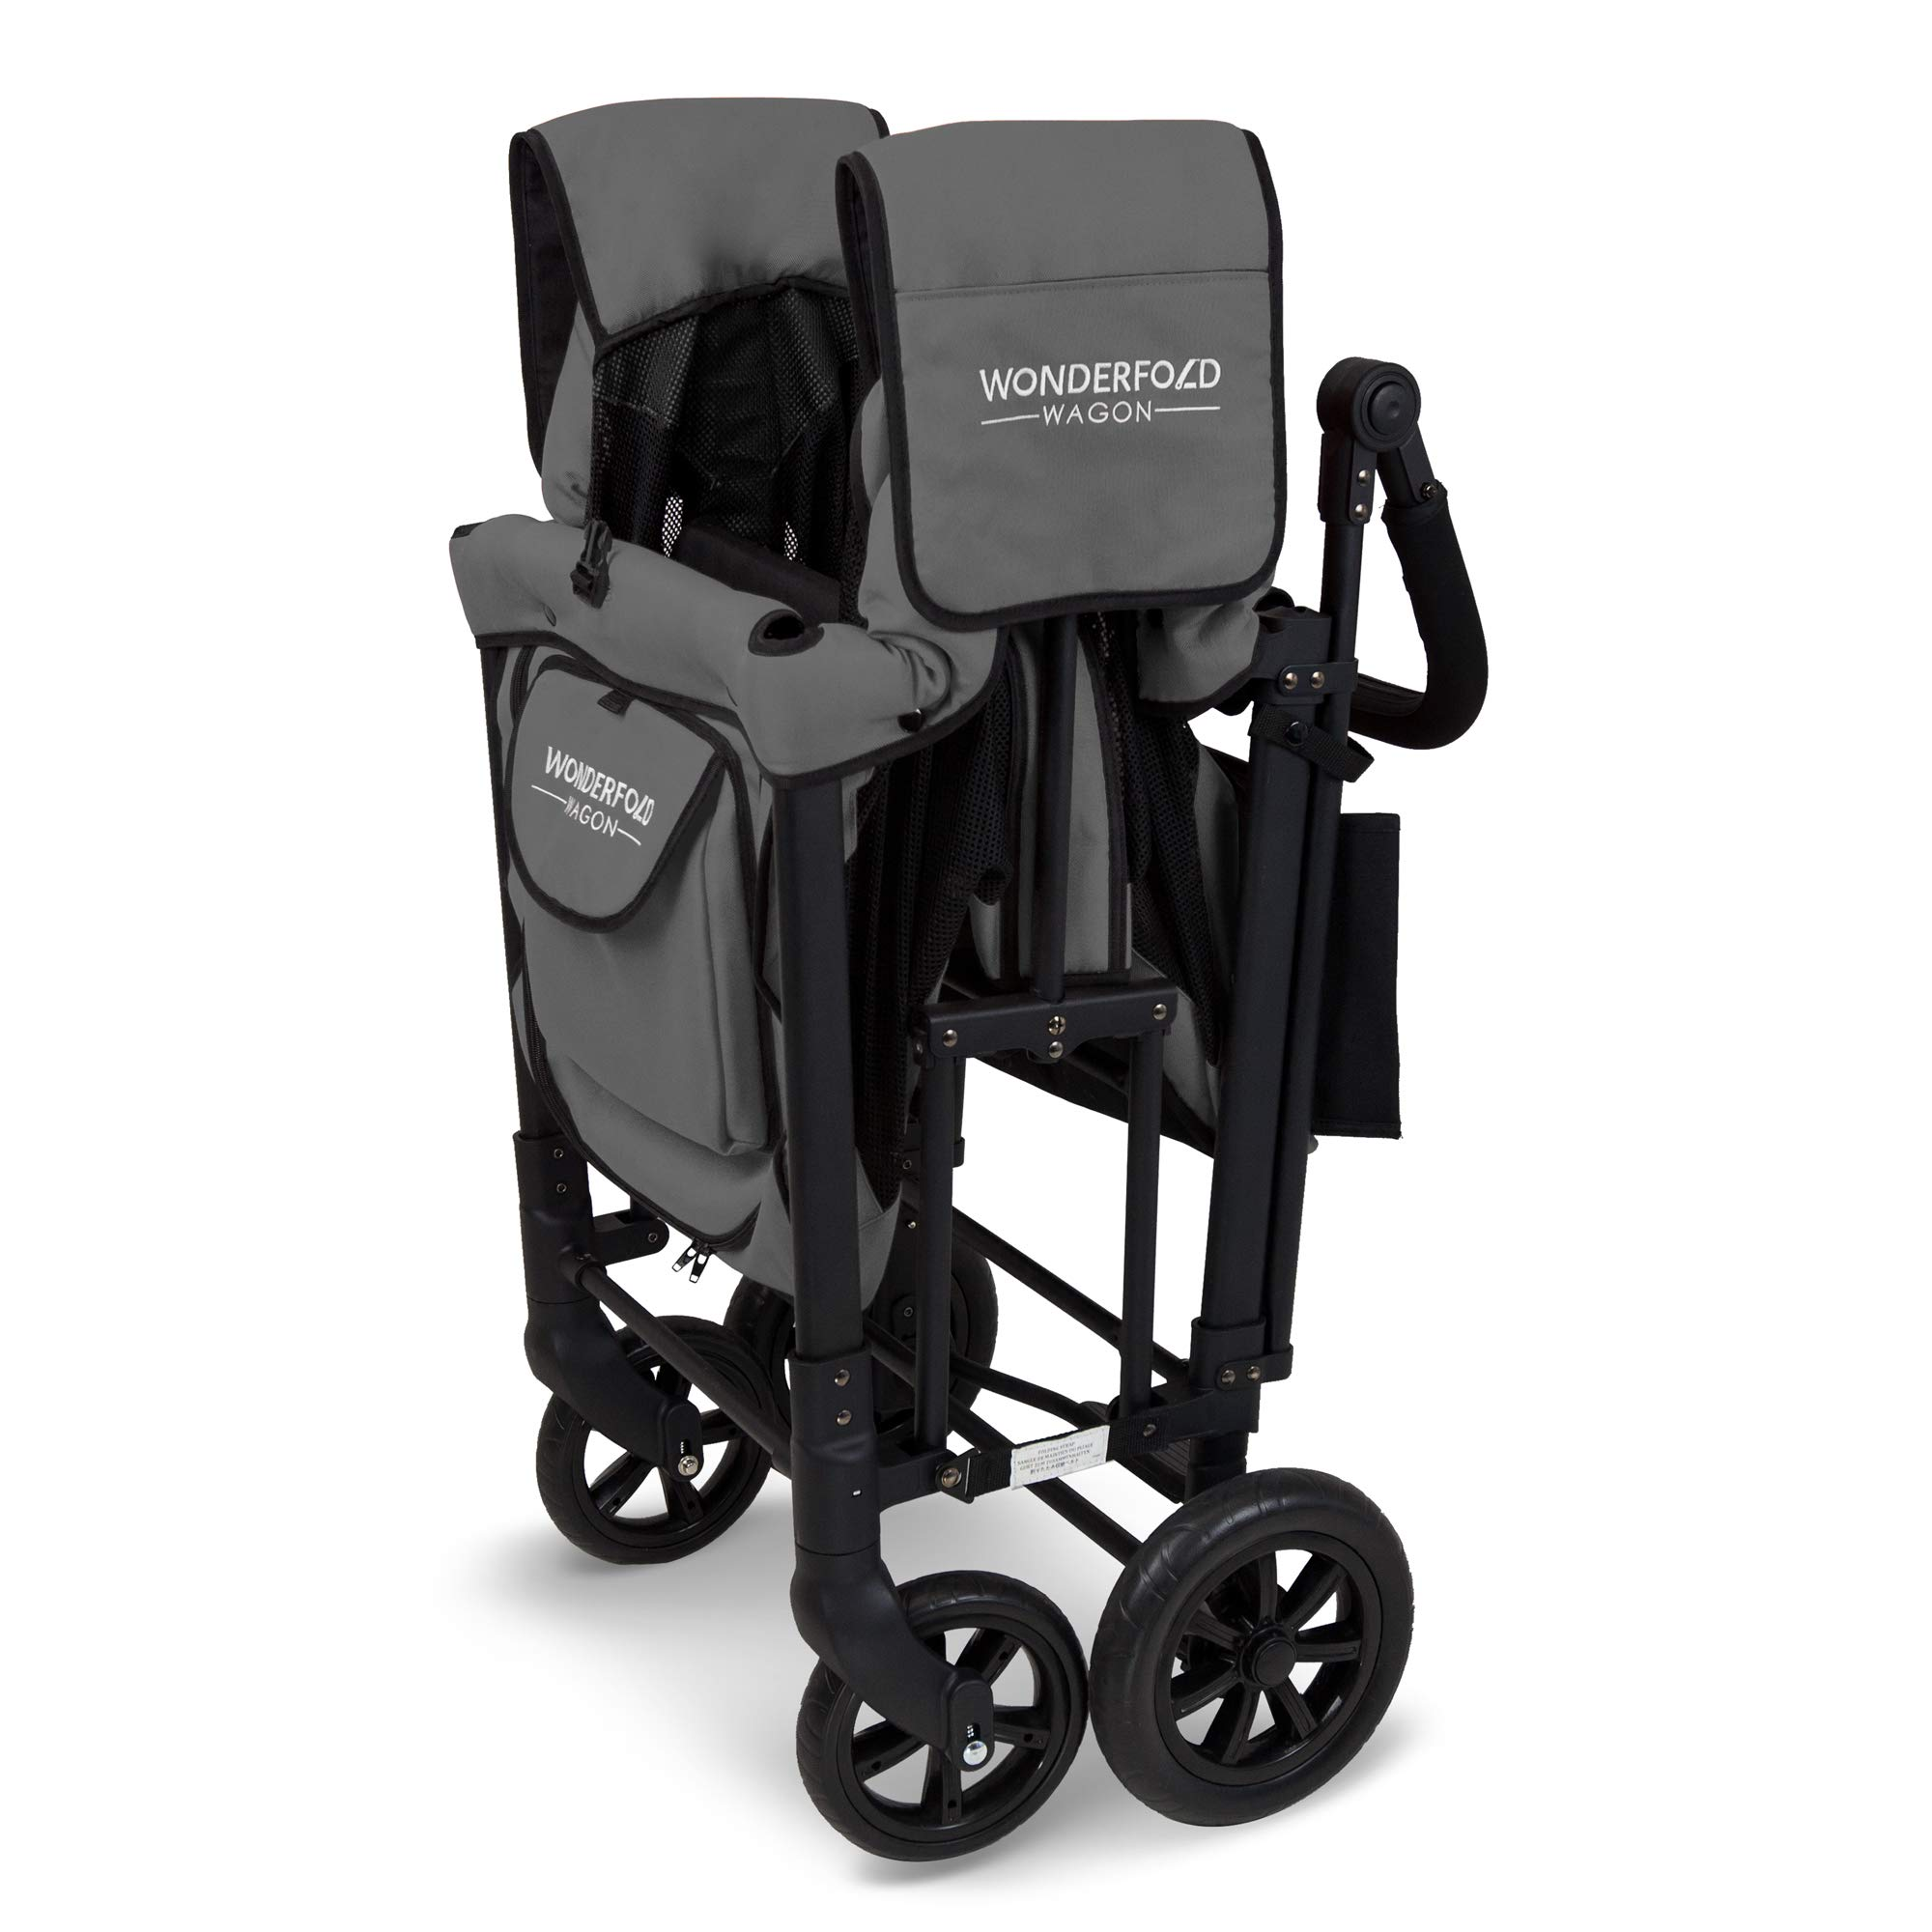 WonderFold Multi-Function Push 2 Passenger Double Folding Stroller, Adjustable Canopy & Removable Chair Seat Up To 2 Toddlers (Charcoal Gray) by WonderFold (Image #7)